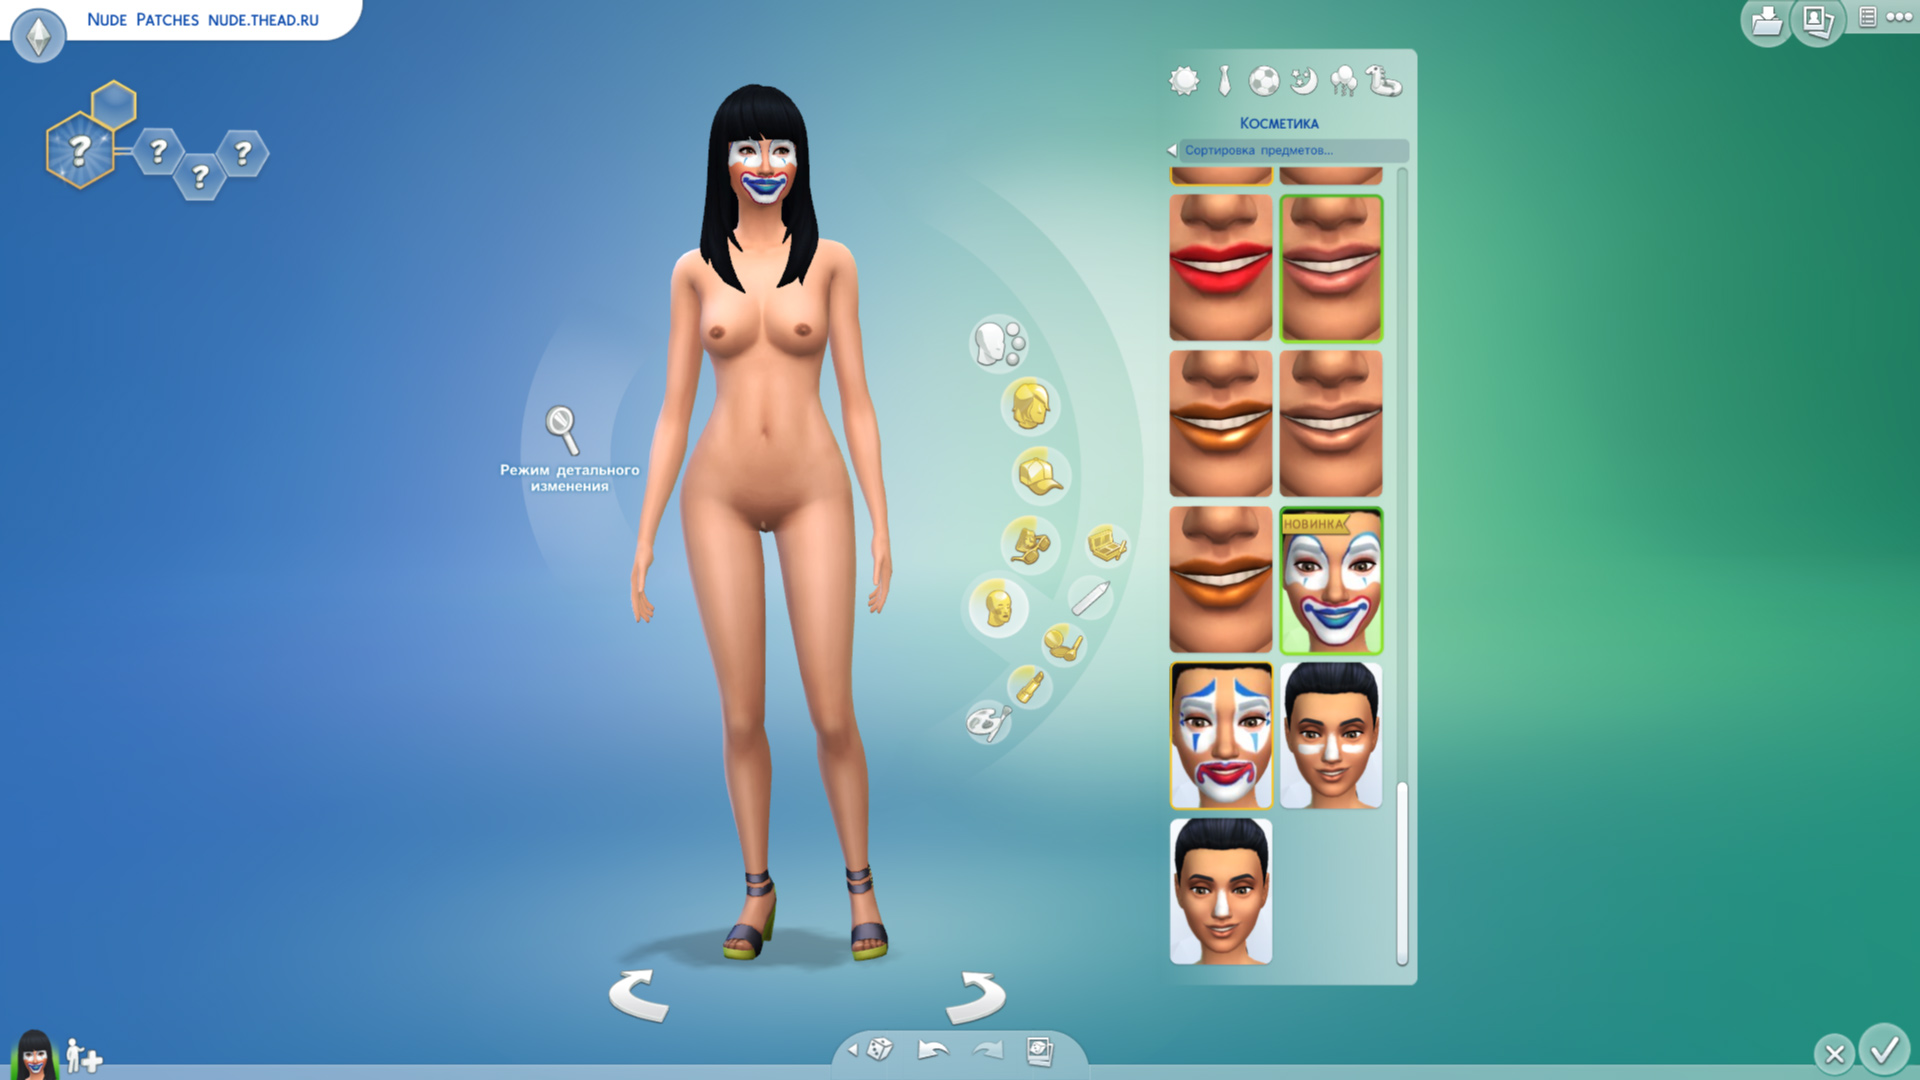 The sims 4 hd nude skin sexy movies